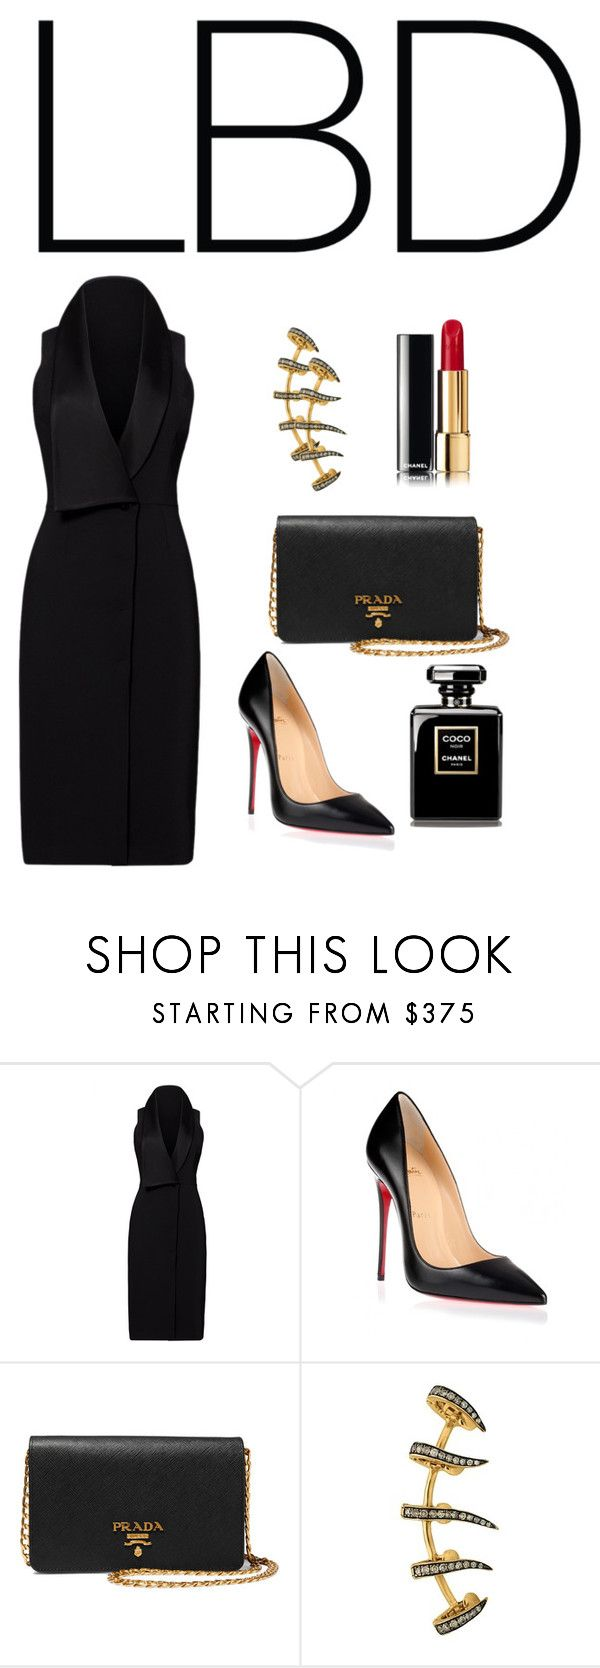 """""""LBD- A French Accent"""" by rbcashyu ❤ liked on Polyvore featuring Halston Heritage, Christian Louboutin, Prada and Christina Debs"""